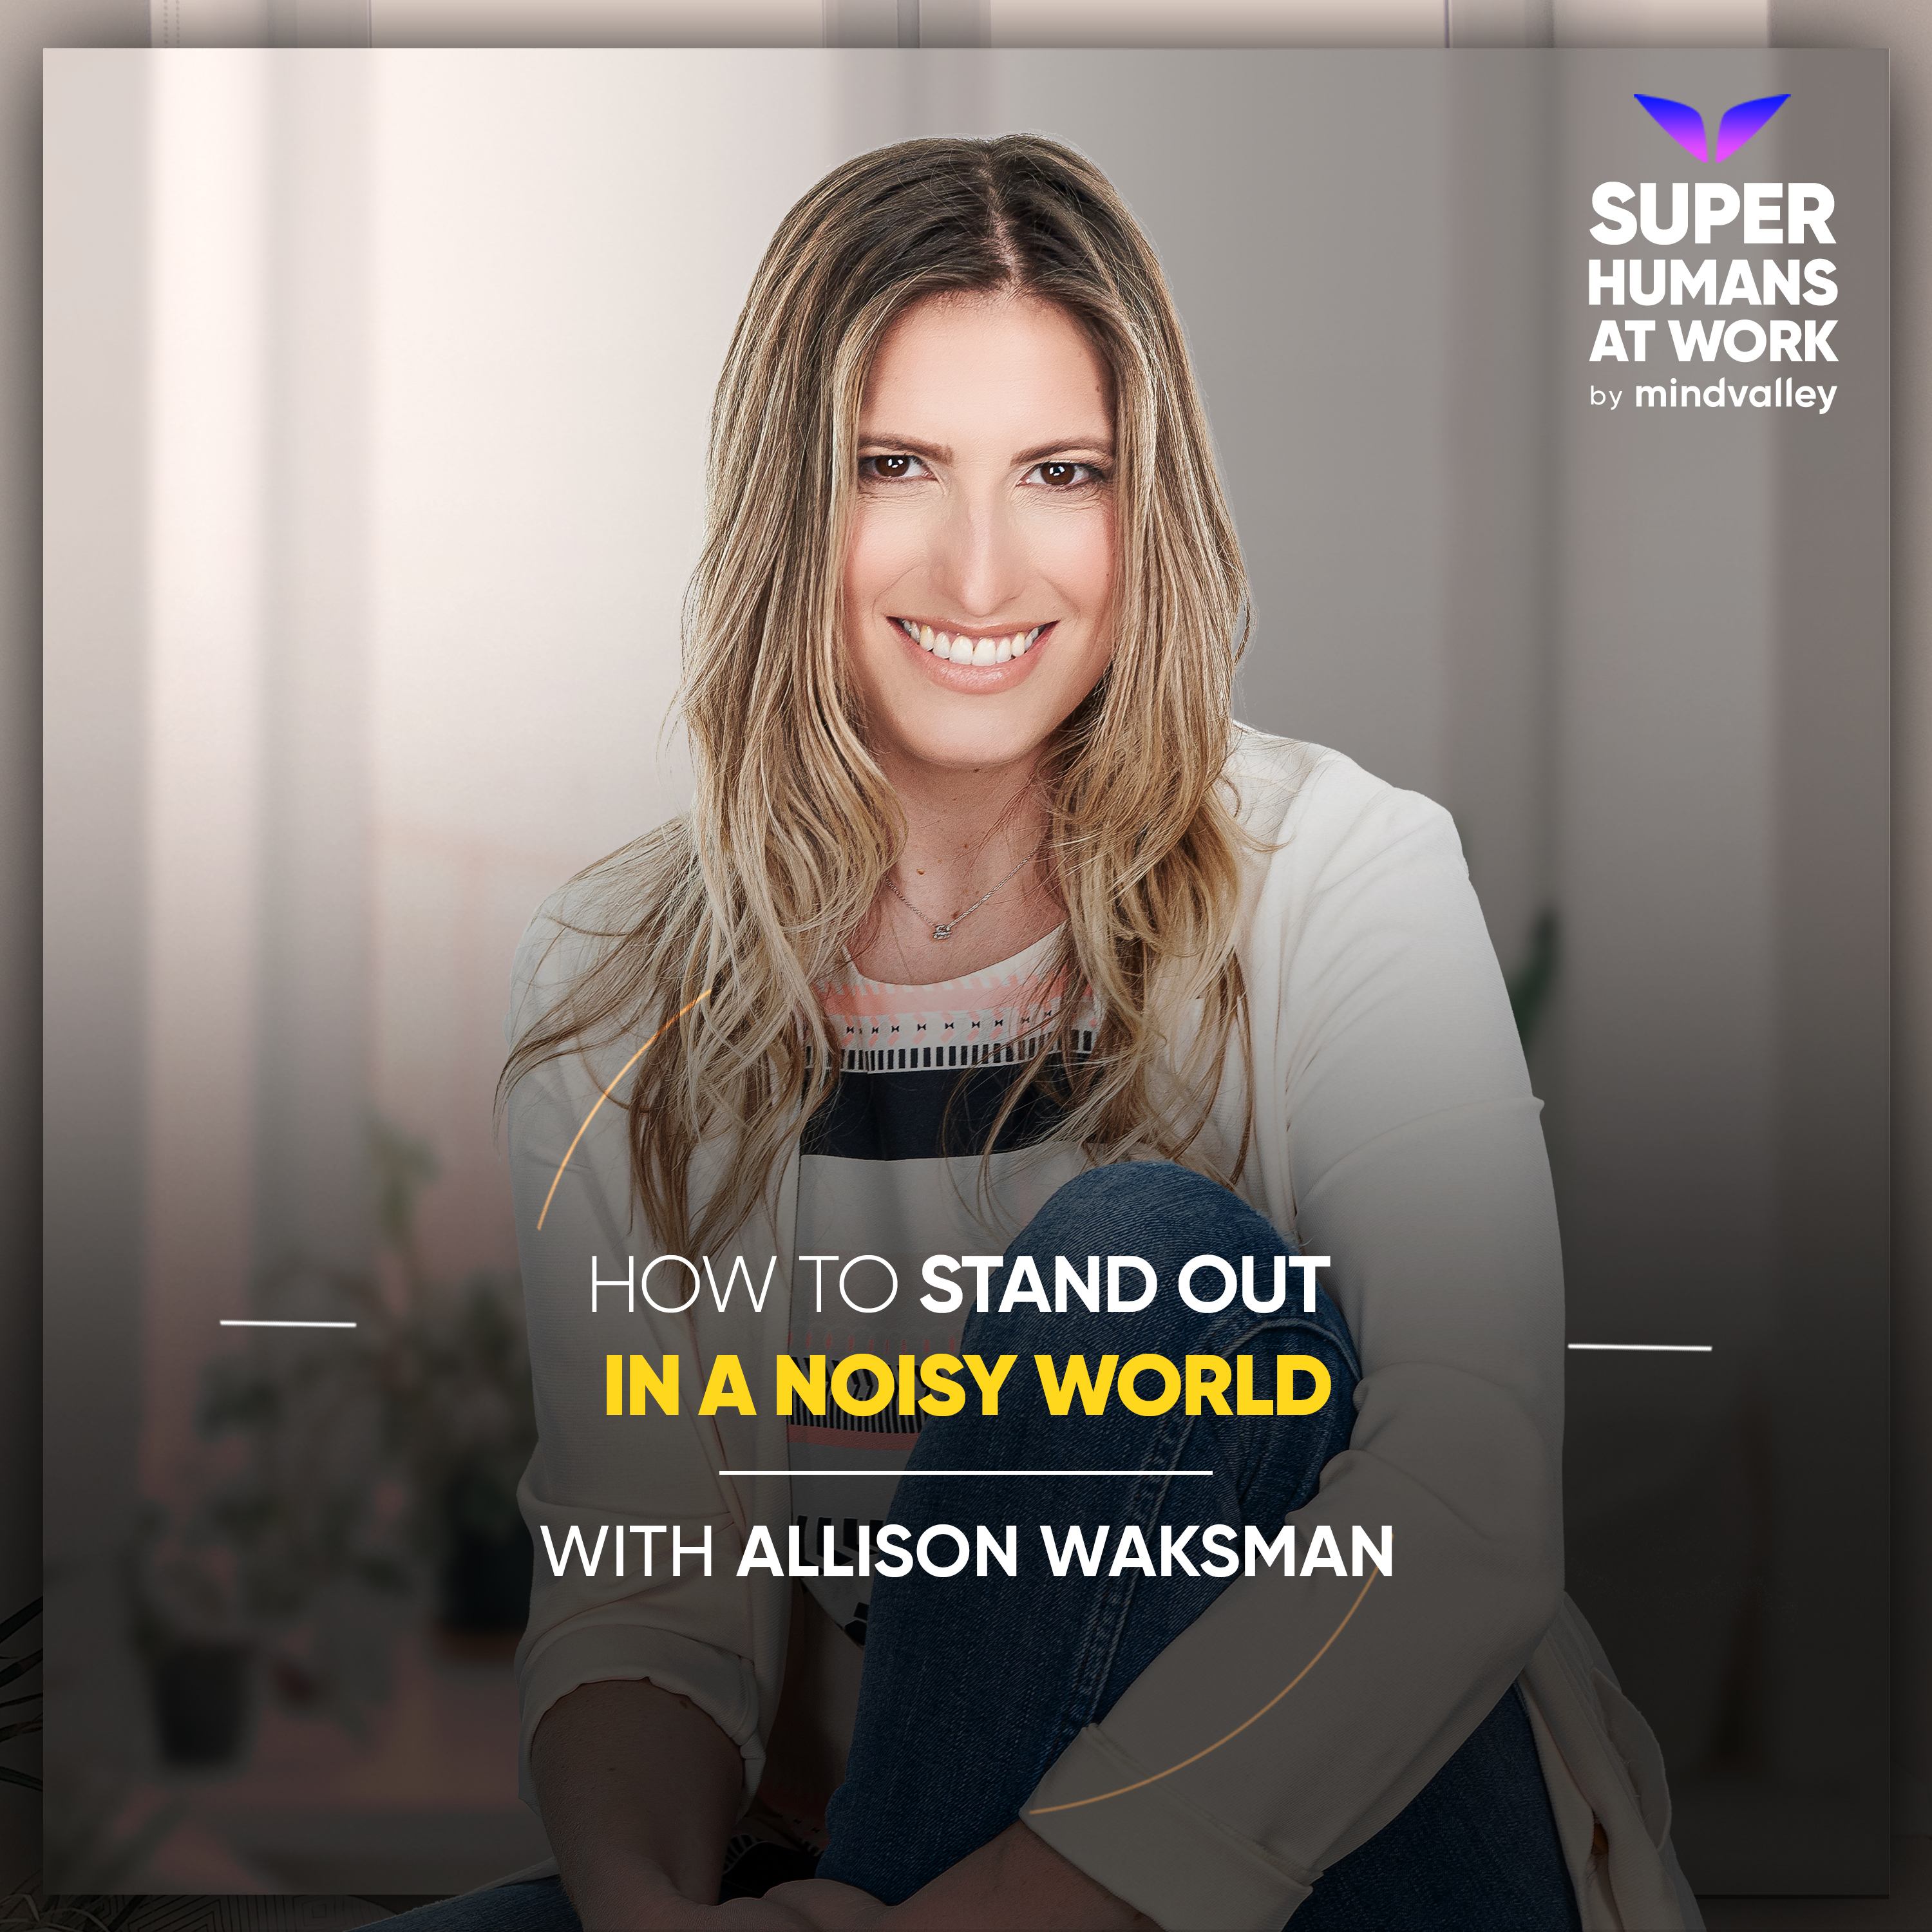 How To Stand Out In A Noisy World - Allison Waksman